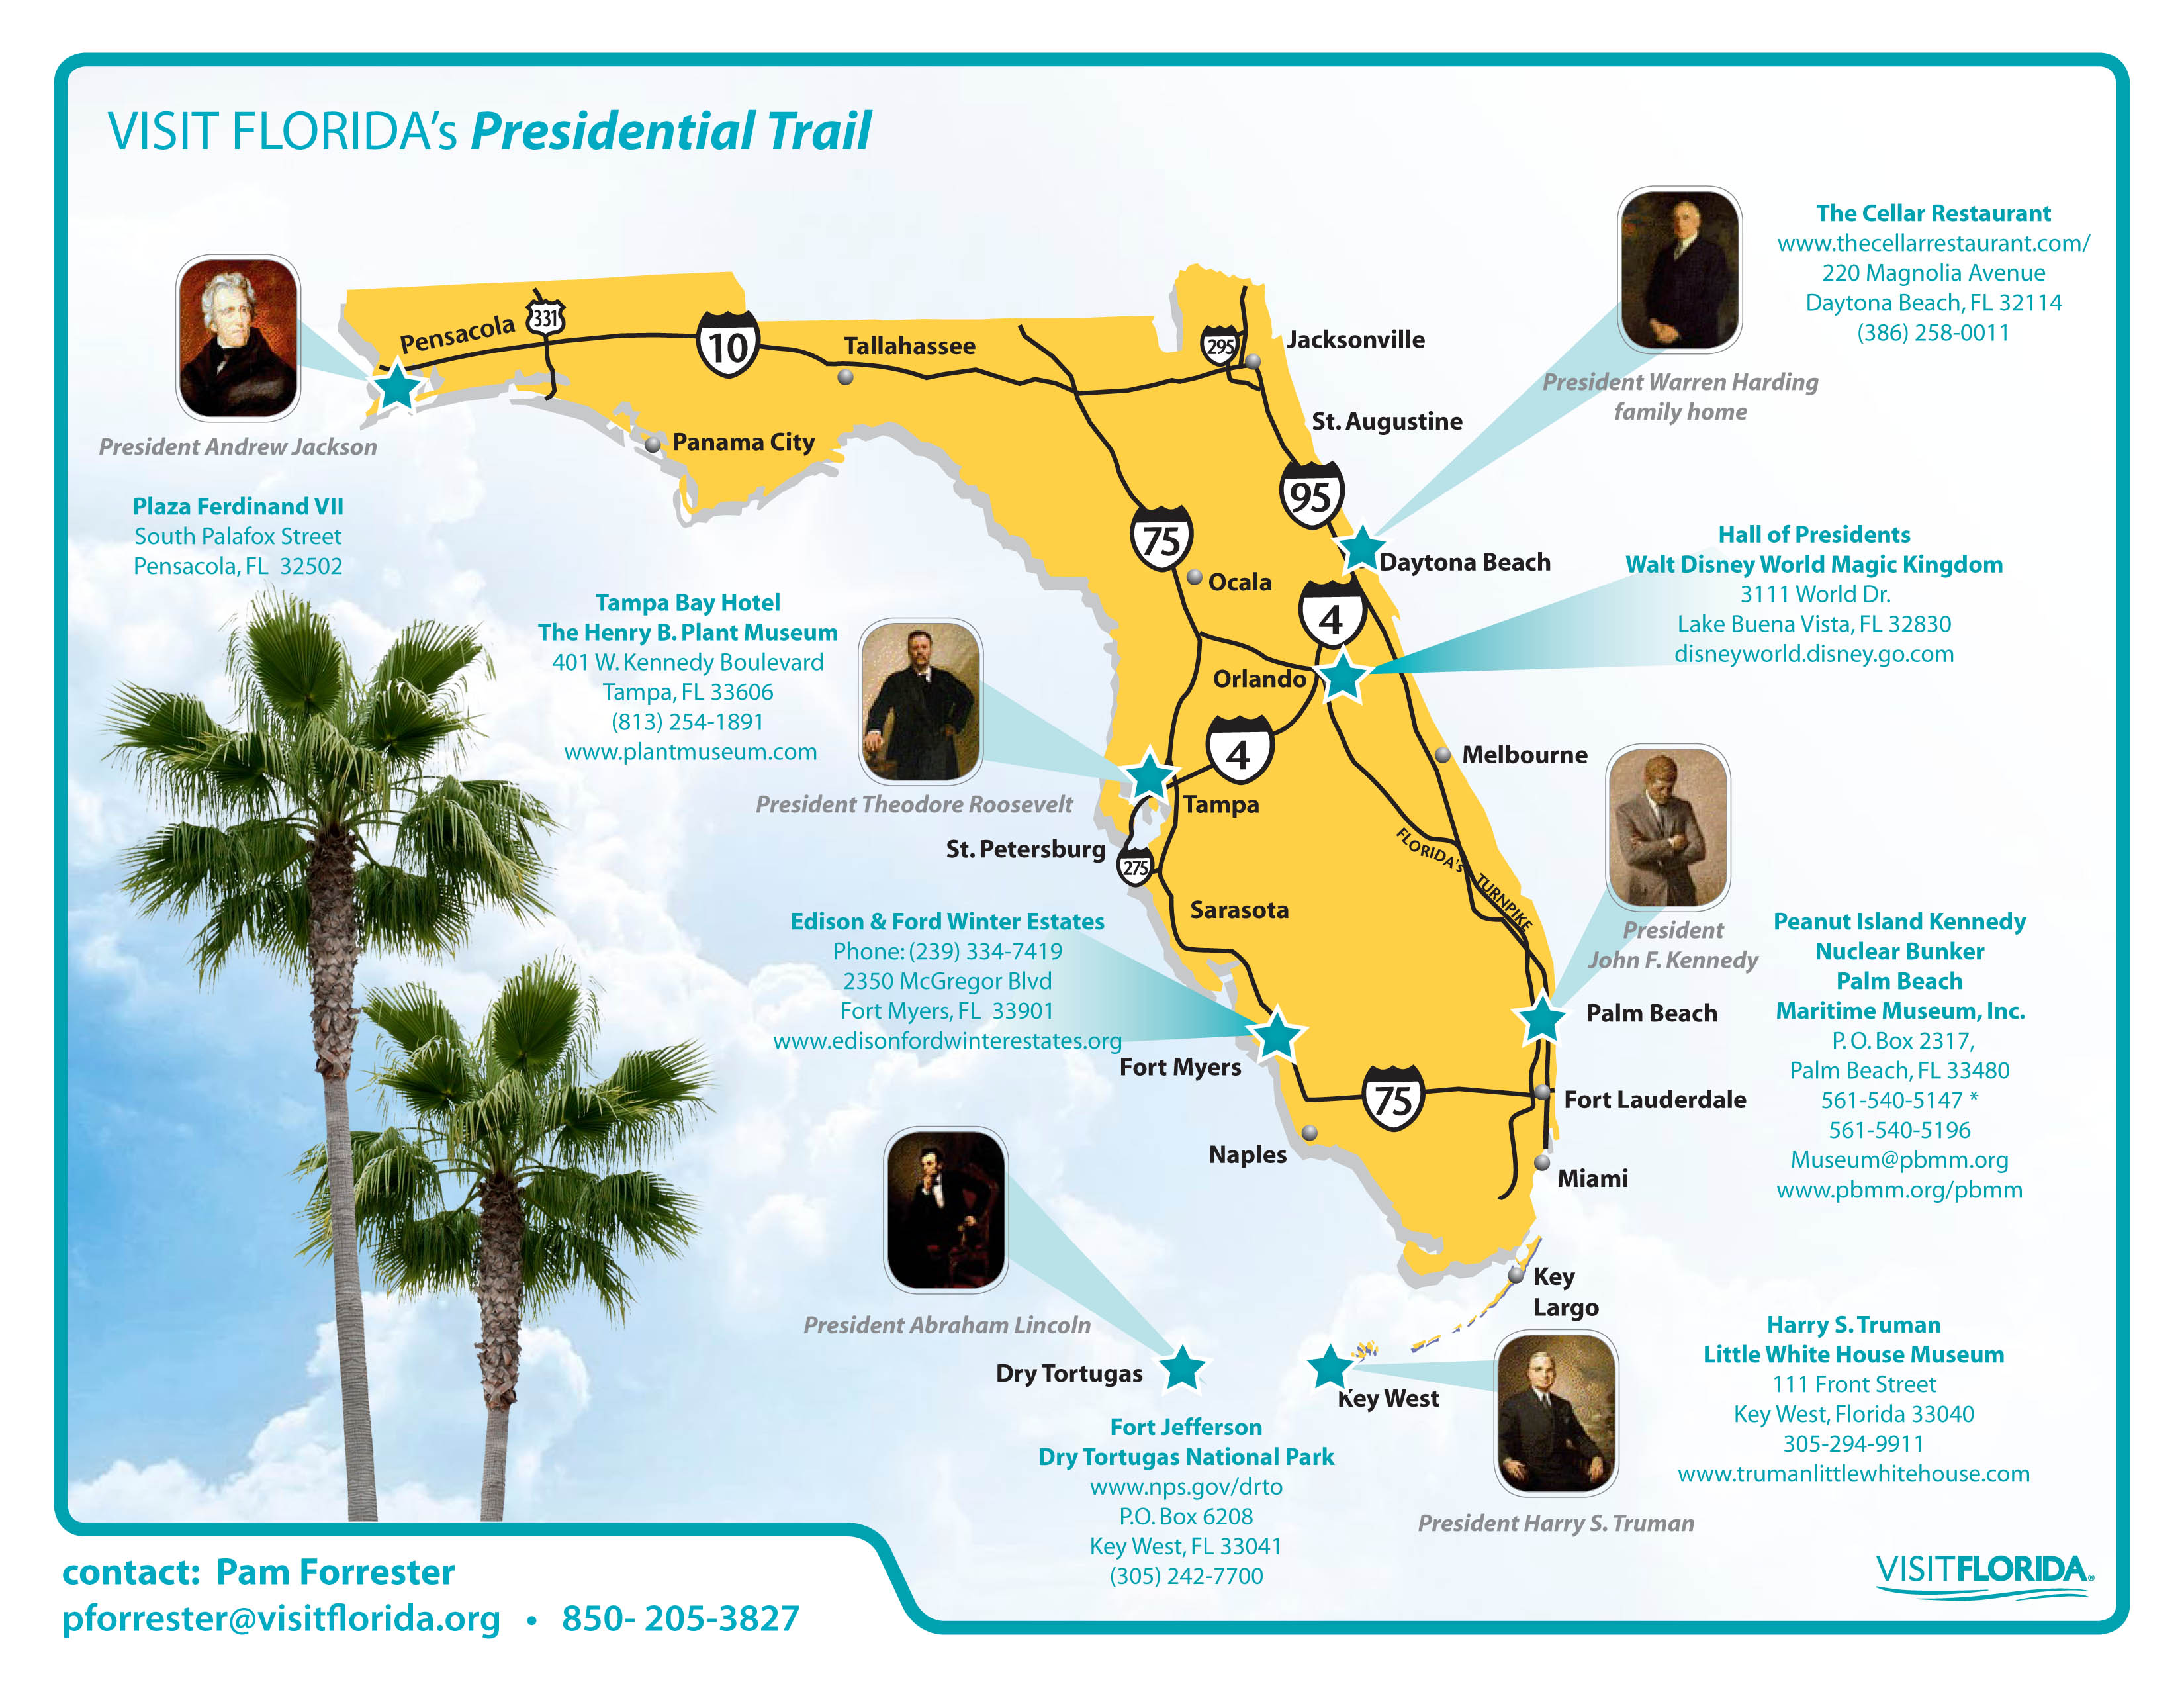 VISIT FLORIDA Presidential Trail Map